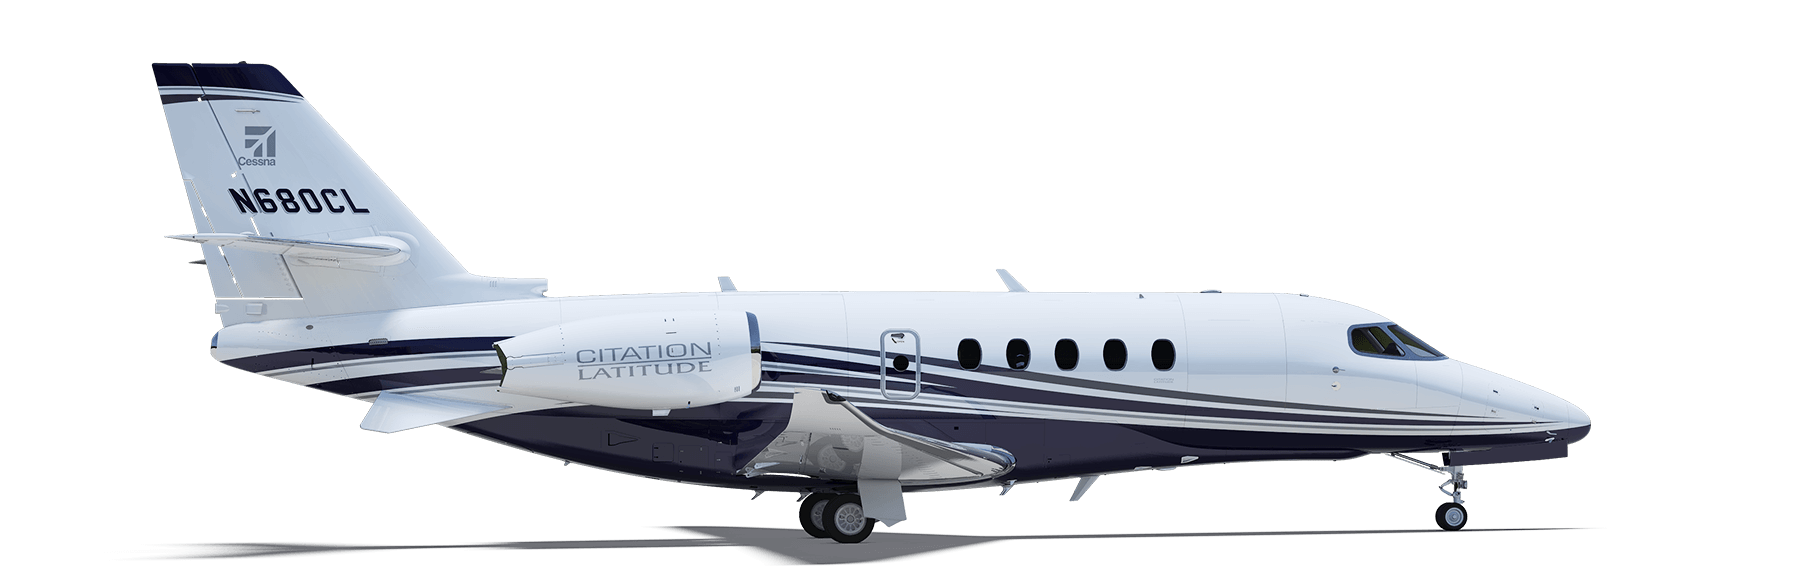 Drawing airplane private jet. Citation latitude turning heads